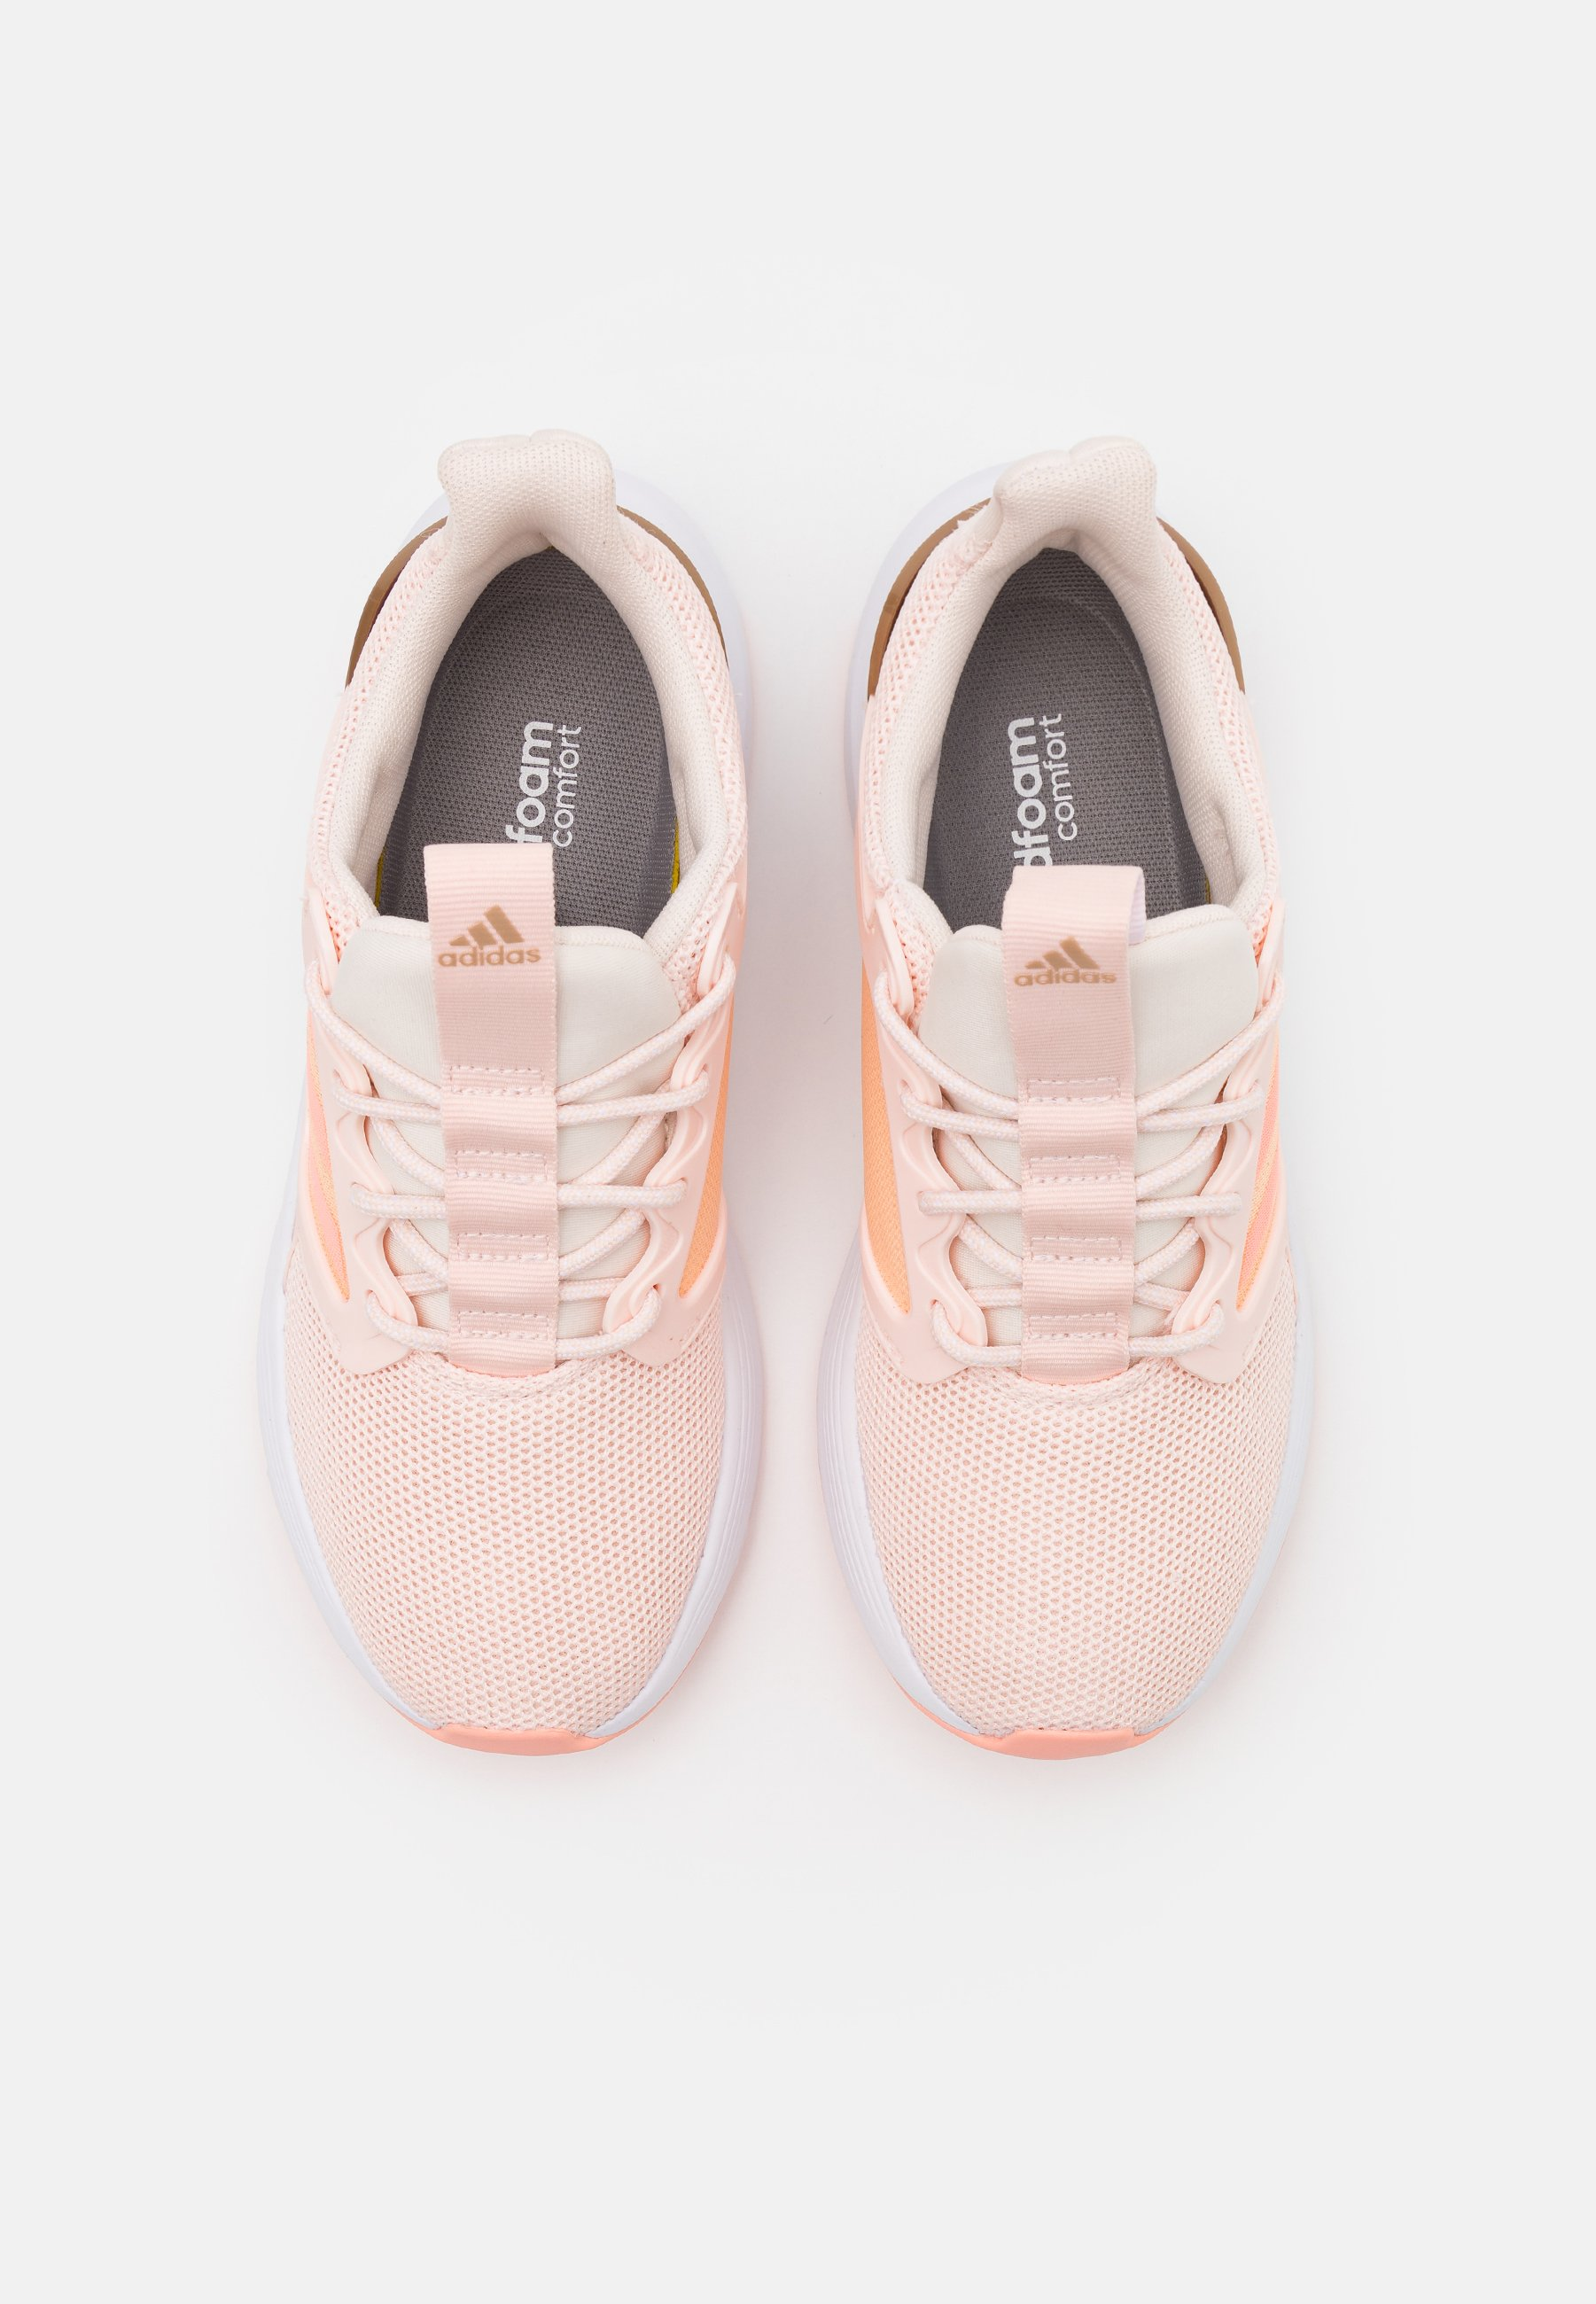 Adidas Cloudfoam Comfort Sneakers Beige and pink